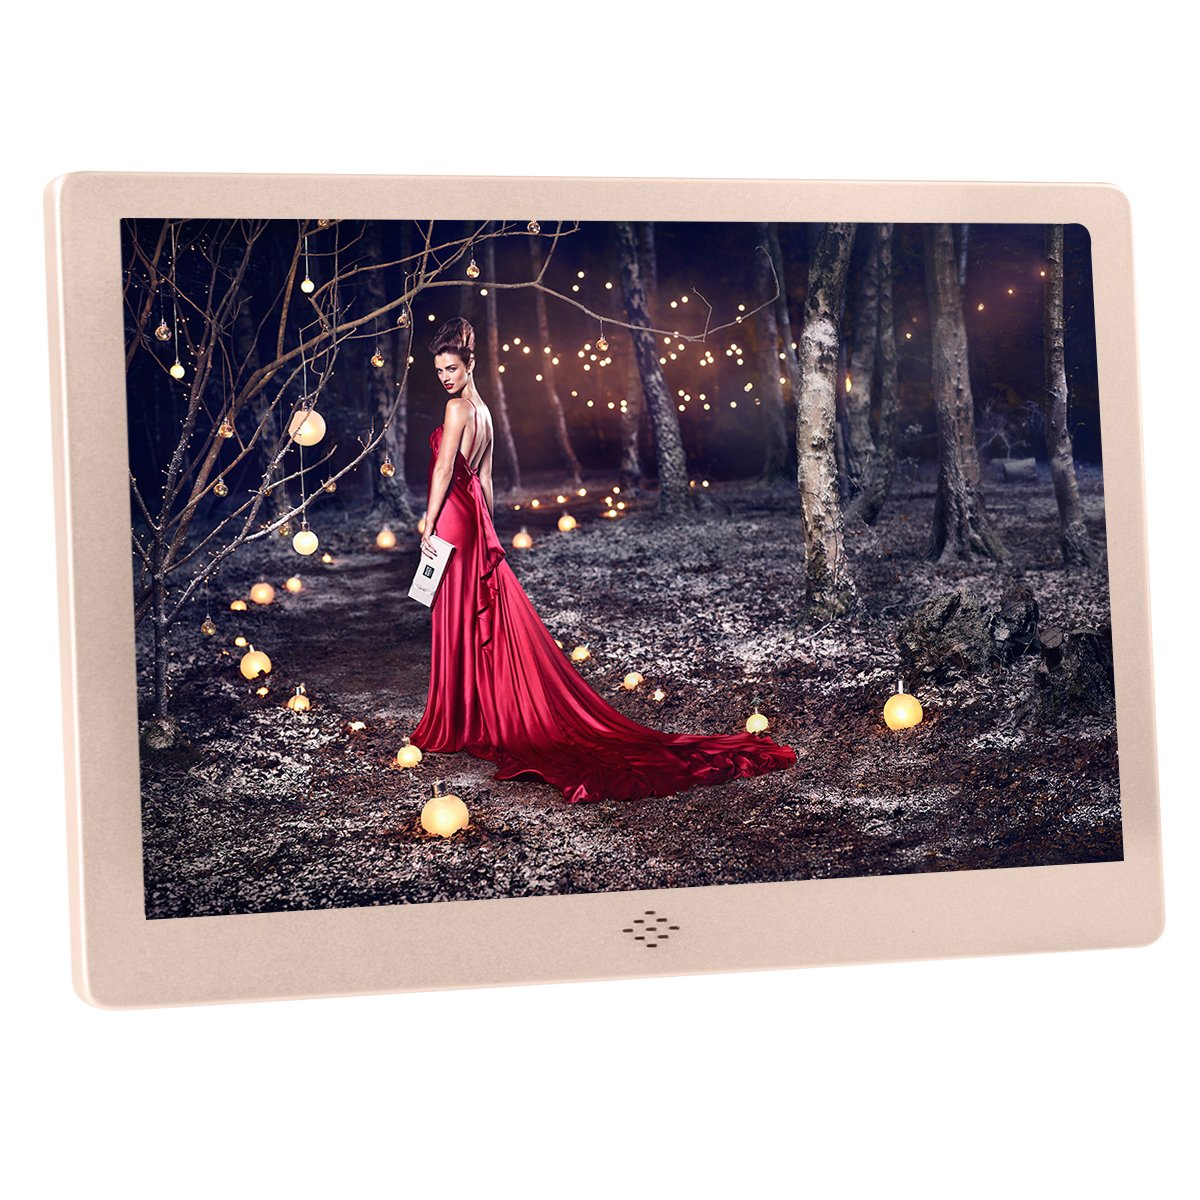 Any-door Digital Picture Frame 12 inch HD Video Player with Music Calender 1080p with Remote Control Picture Display WIFI(Gold)